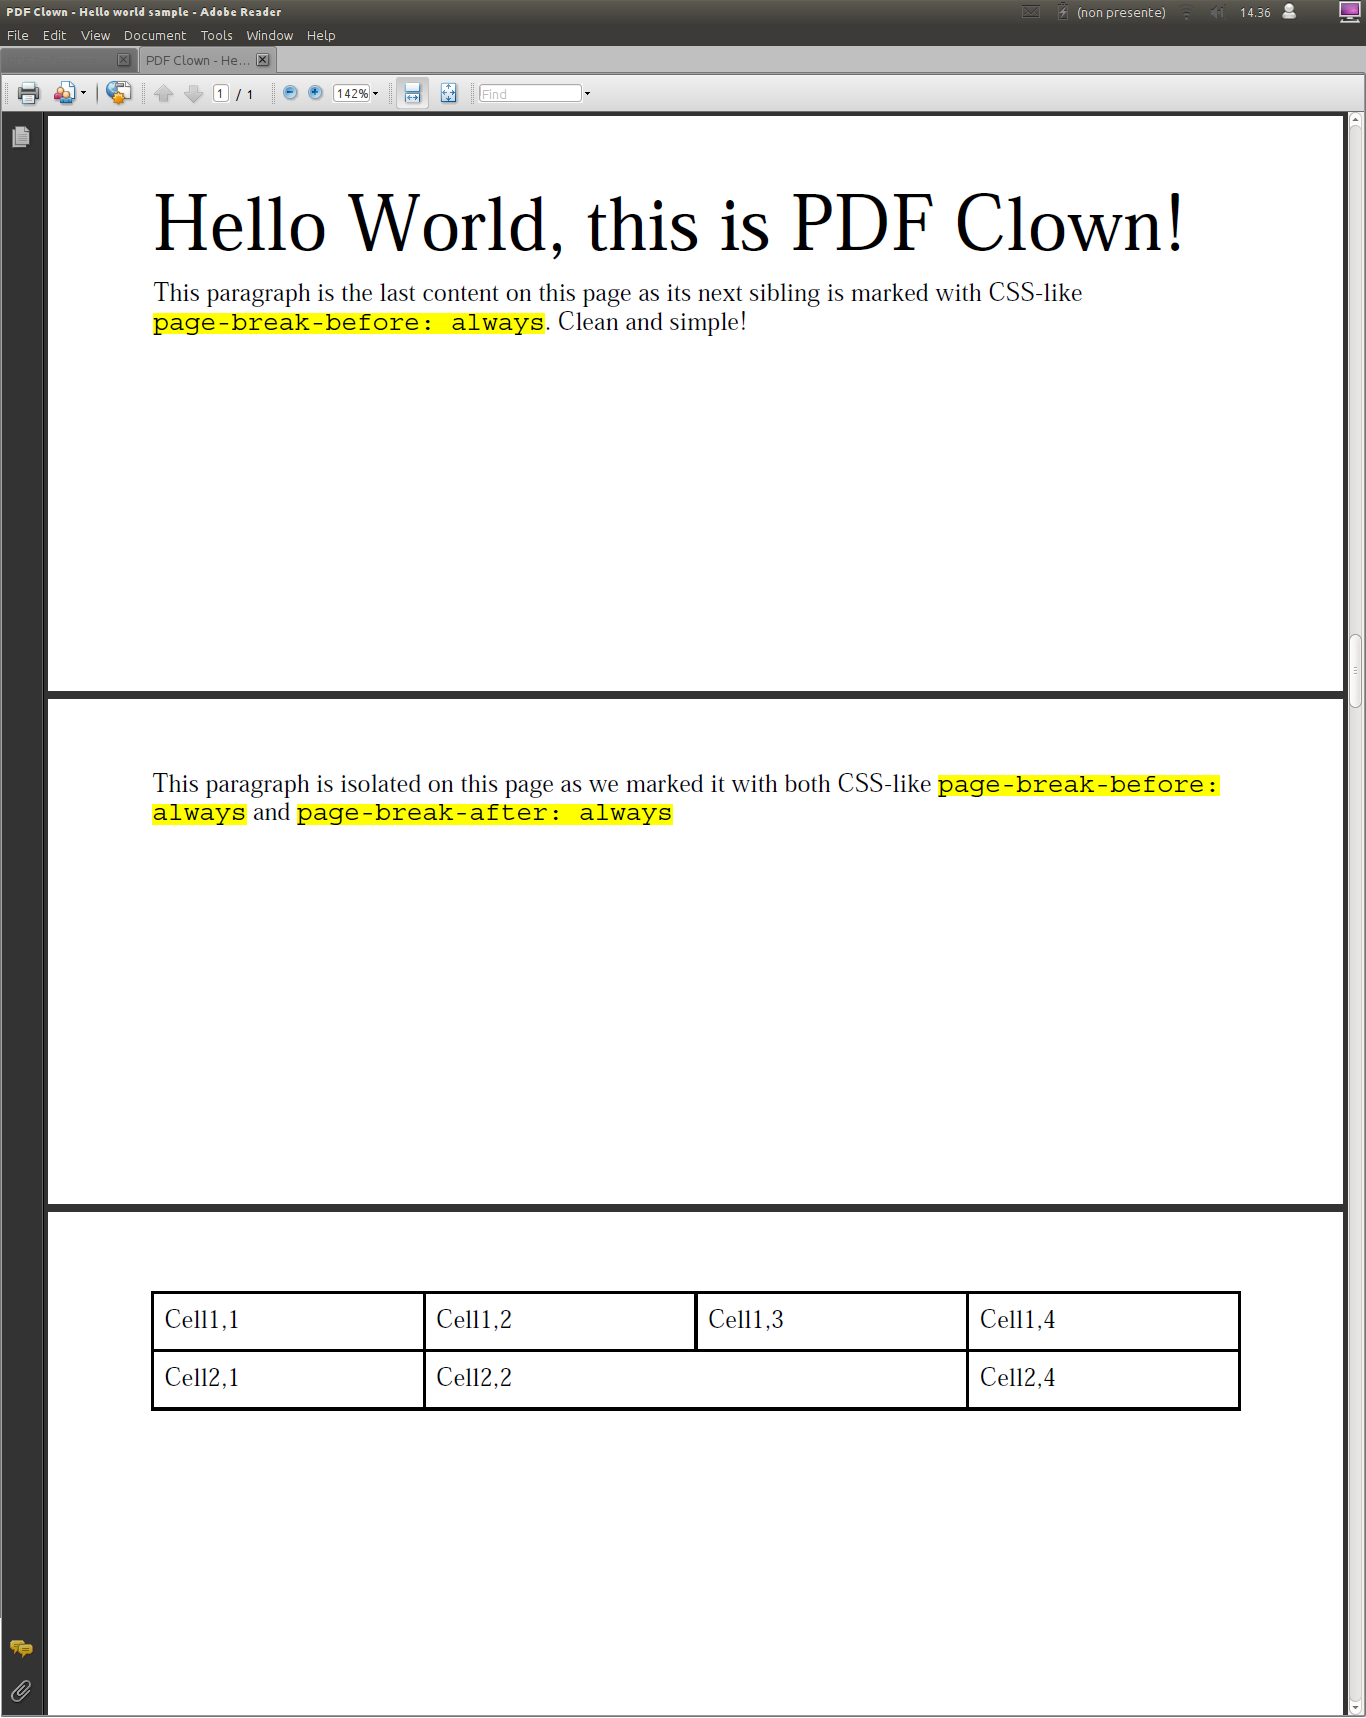 PDF Clown 0 2 0 — Enhanced content handling – PDF Clown